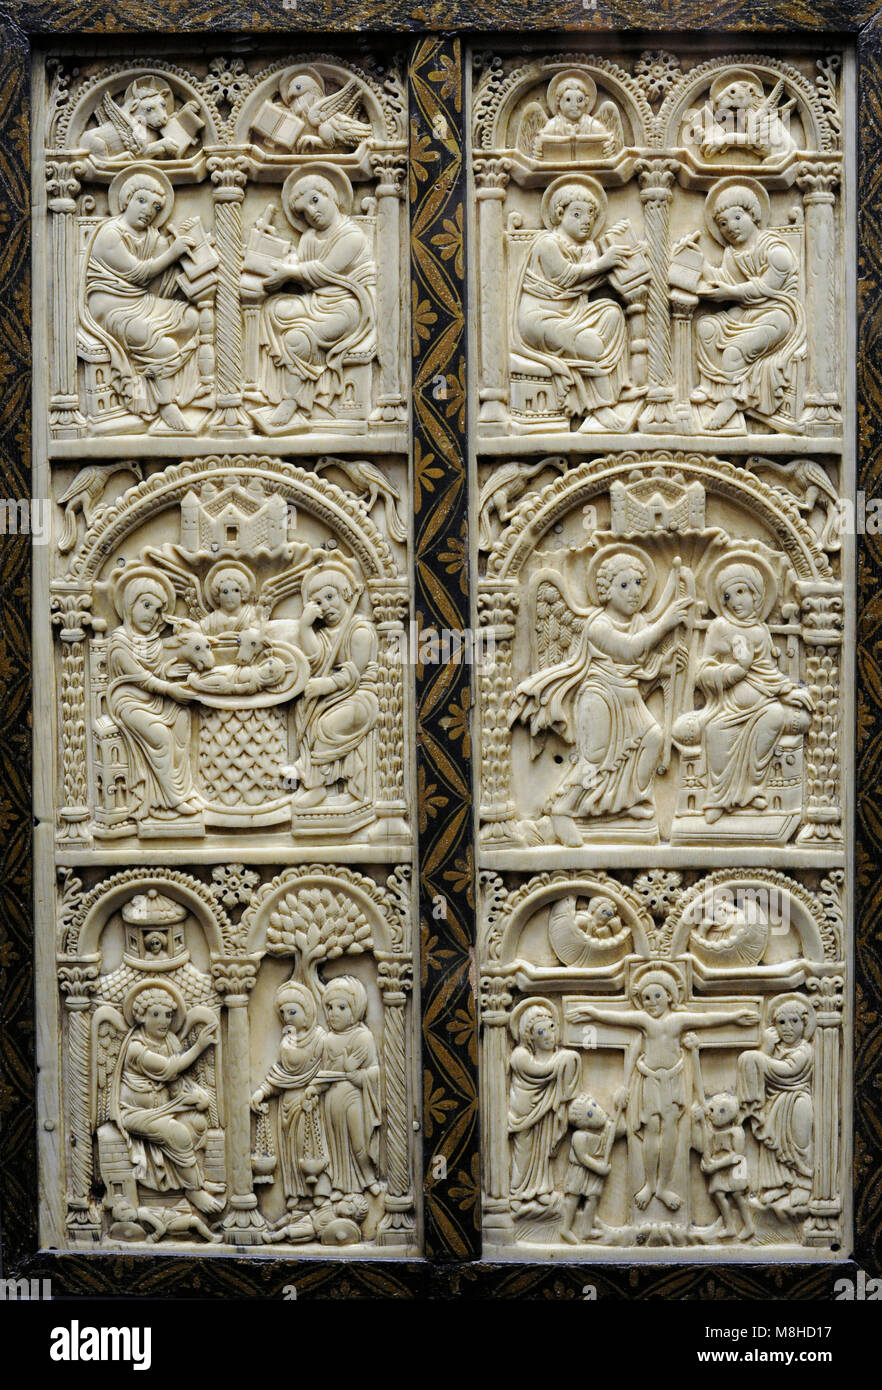 Harrach Diptych. Court School of Charlemagne, c. 800. Reverse. From Spain or northern Italy, c. 700-750. Ivory. - Stock Image